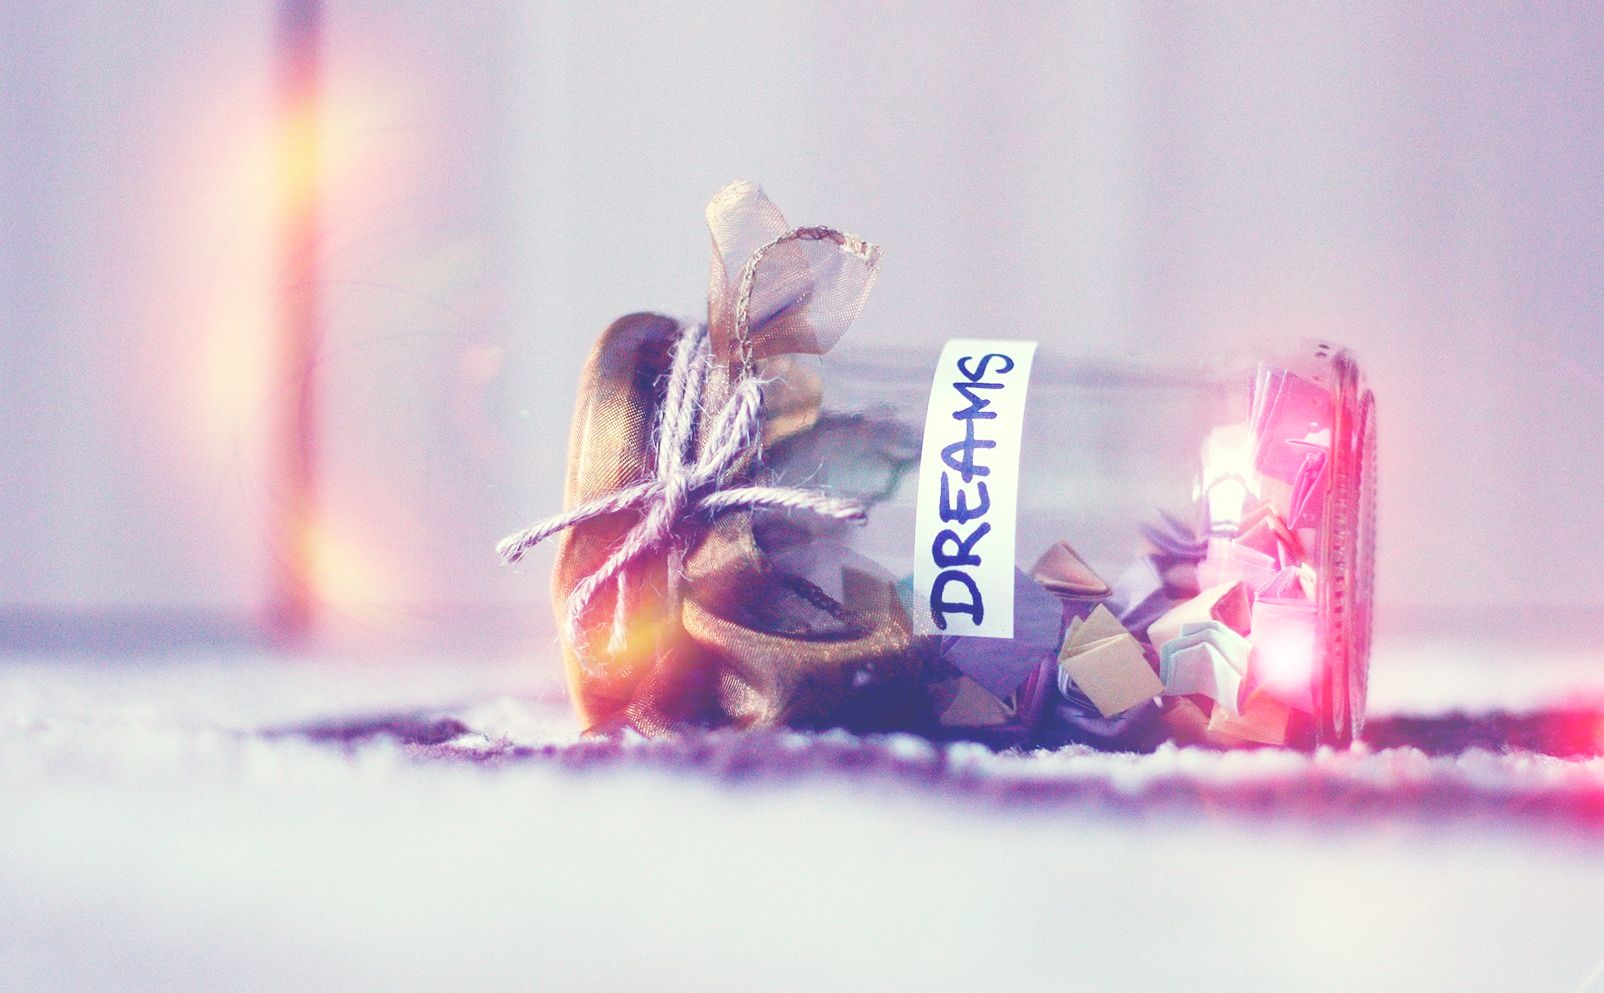 tumblr dream photography - Google keresés | Dream ...